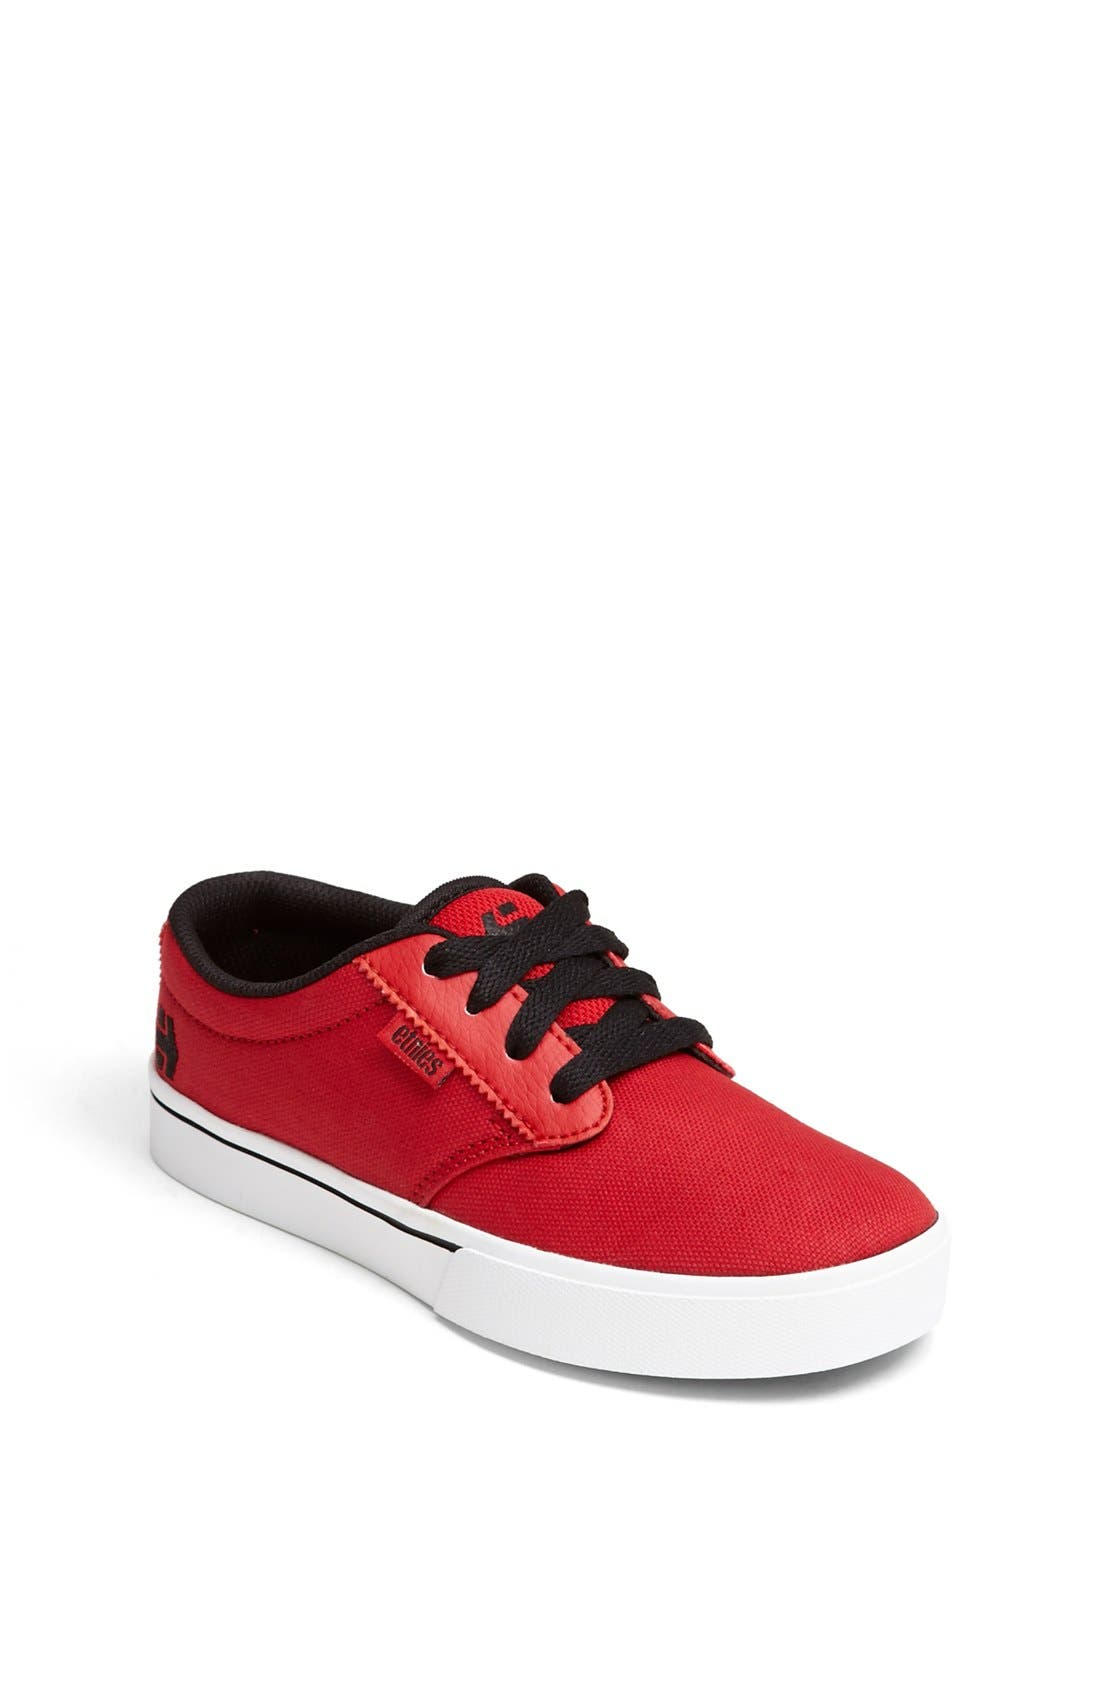 Alternate Image 1 Selected - Etnies 'Kids Jameson 2' Sneaker (Toddler, Little Kid & Big Kid)